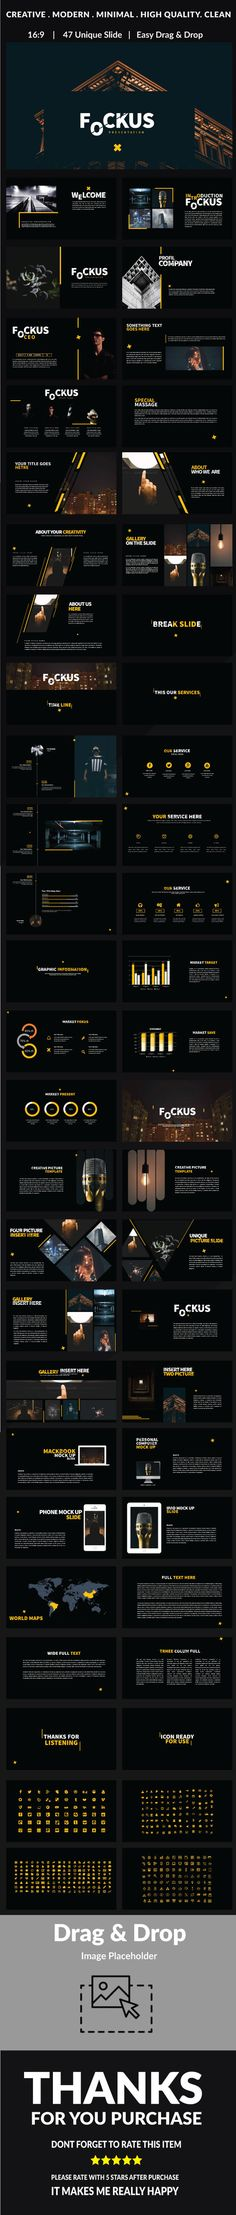 Fockus - Multipurpose Powerpoint ultra-modern and unique design, where each slide is created with love and attention to detail. Fockus is a multipurpose Powerpoint template that can be used for any type of presentation: business, portfolio, corporate, branding.